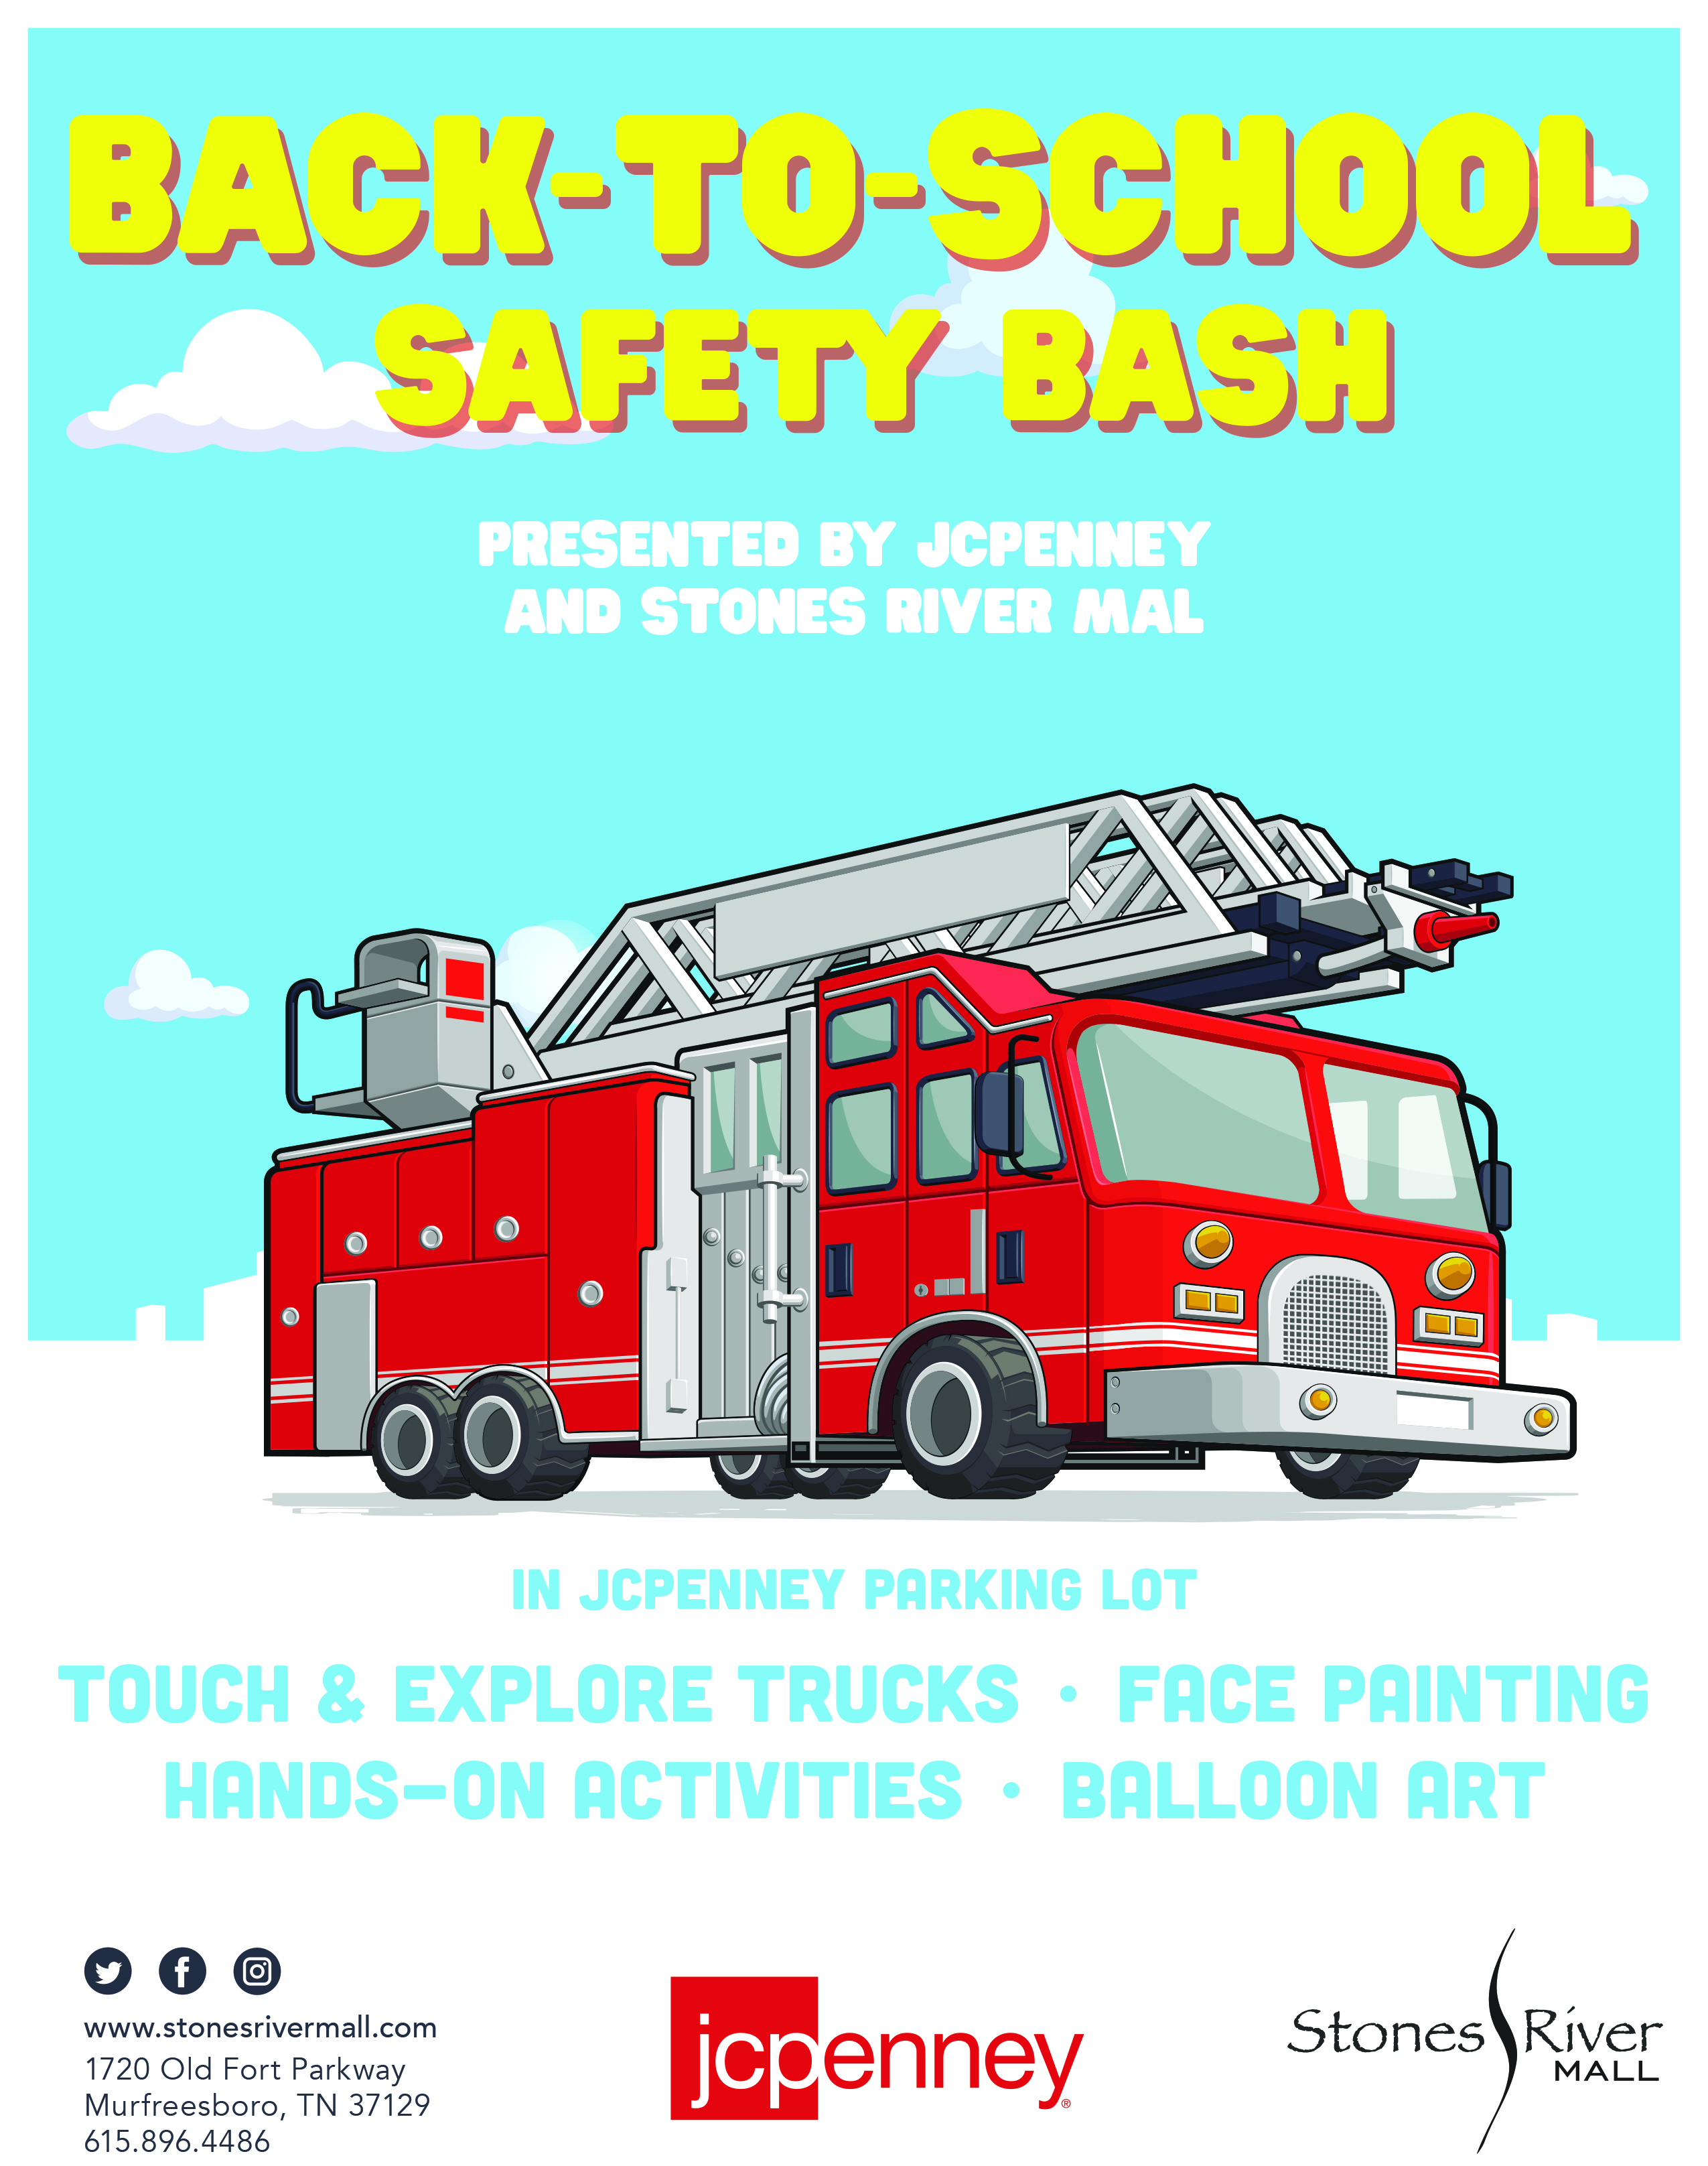 Stones River Mall, JCPenney present Back-to-School Safety Bash on Aug. 20